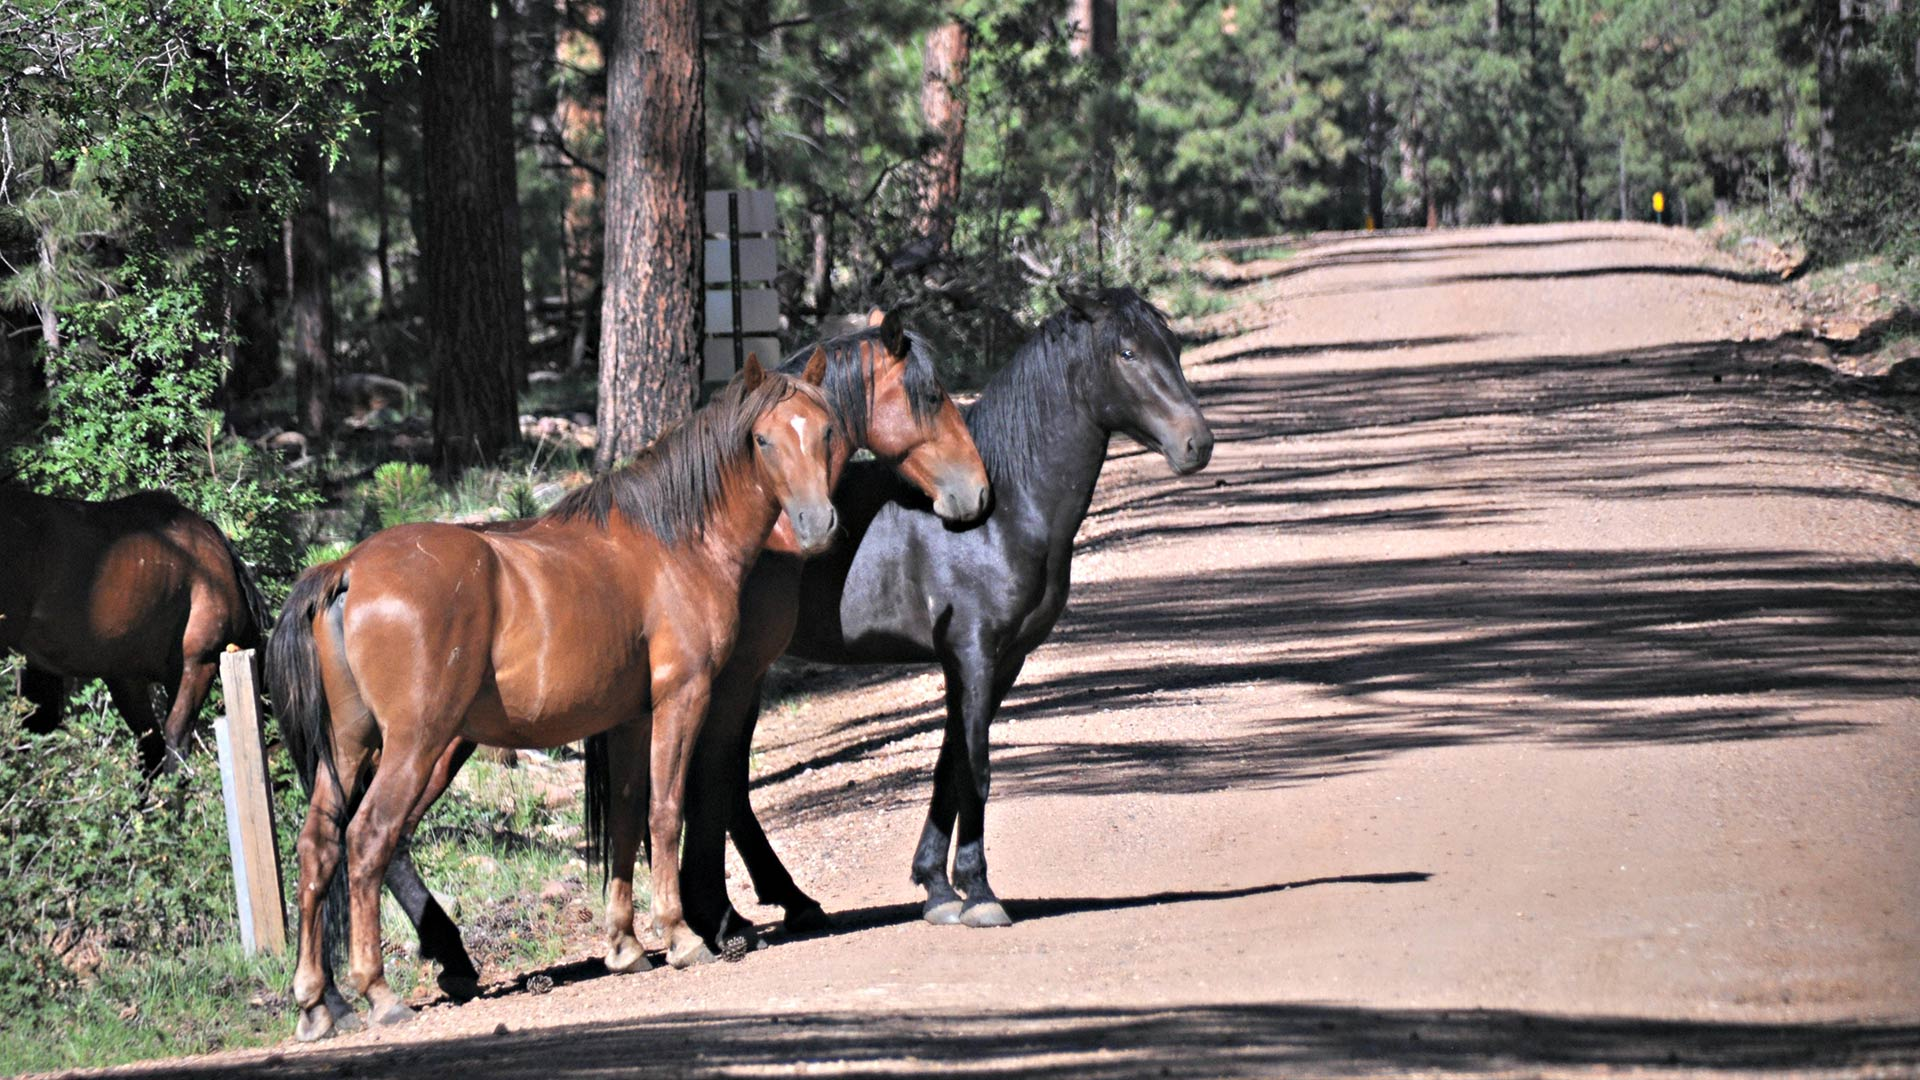 Wild horses near Heber-Overgaard, Arizona in the Apache-Sitgreaves National Forest.